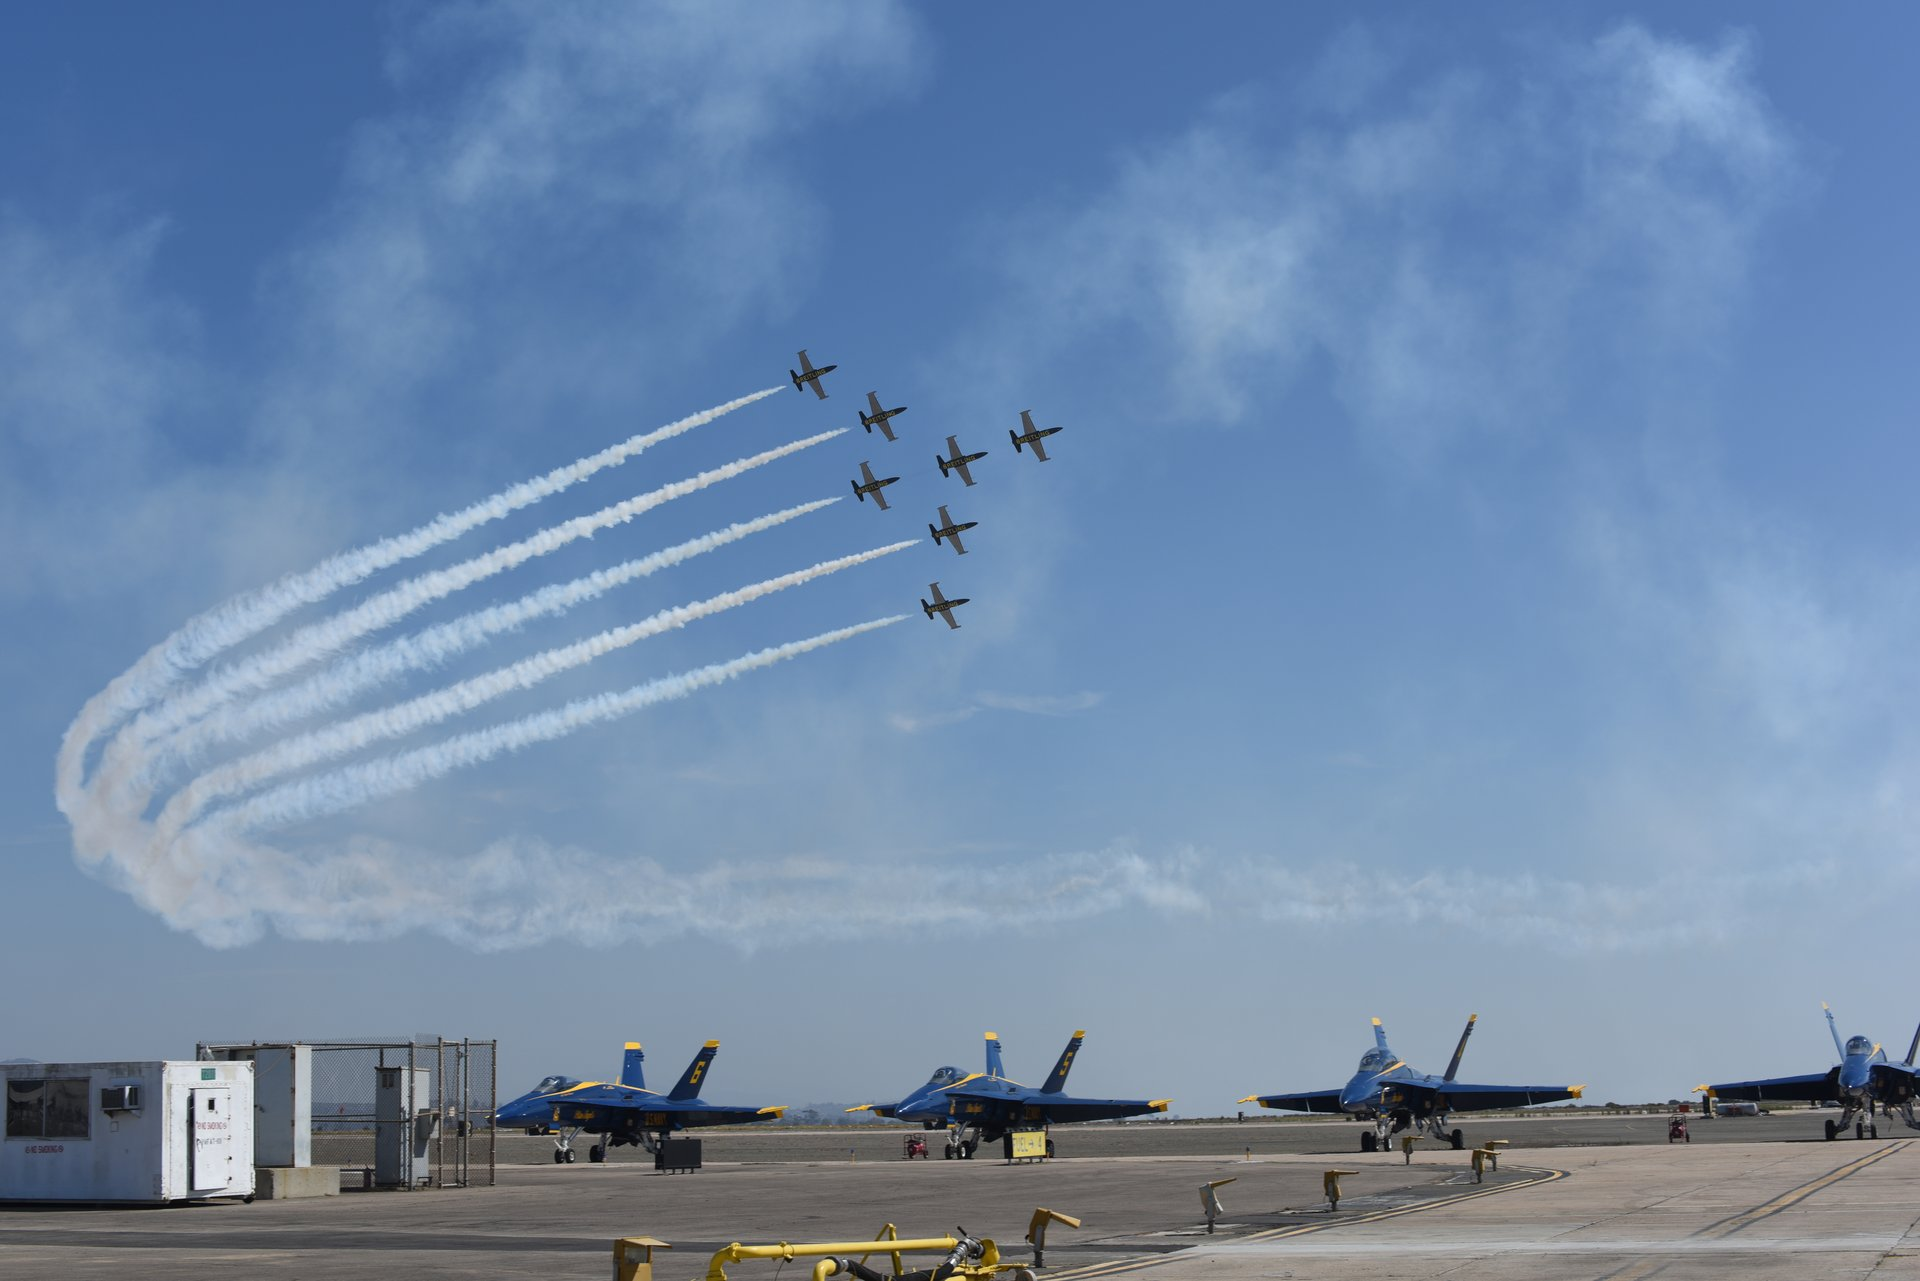 The Breitling Jet Team fly in formation over the Blue Angels 2020